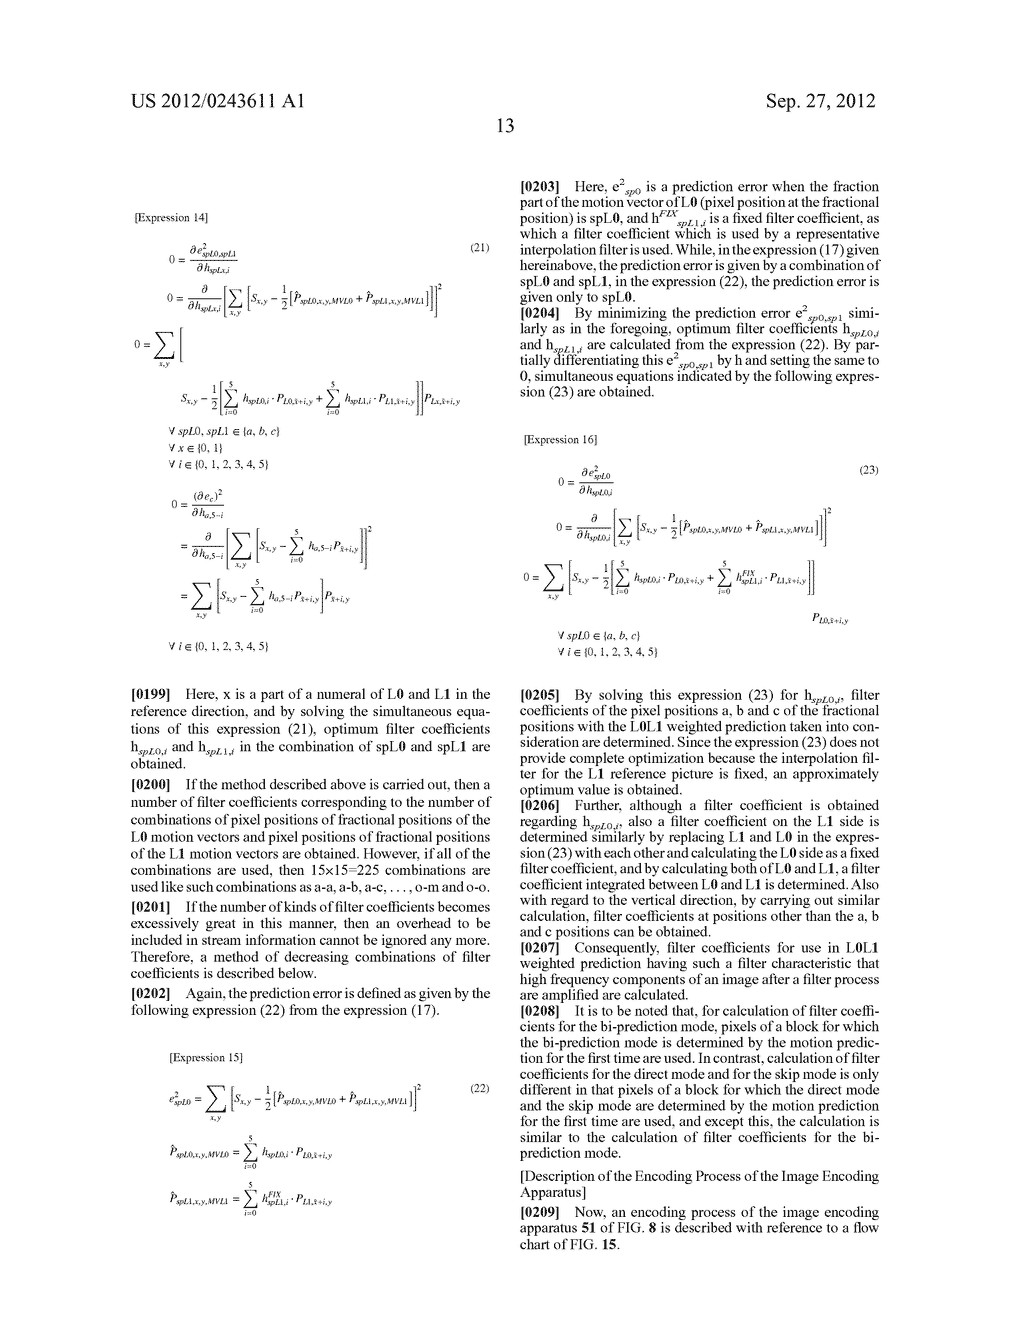 IMAGE PROCESSING APPARATUS AND METHOD AS WELL AS PROGRAM - diagram, schematic, and image 50